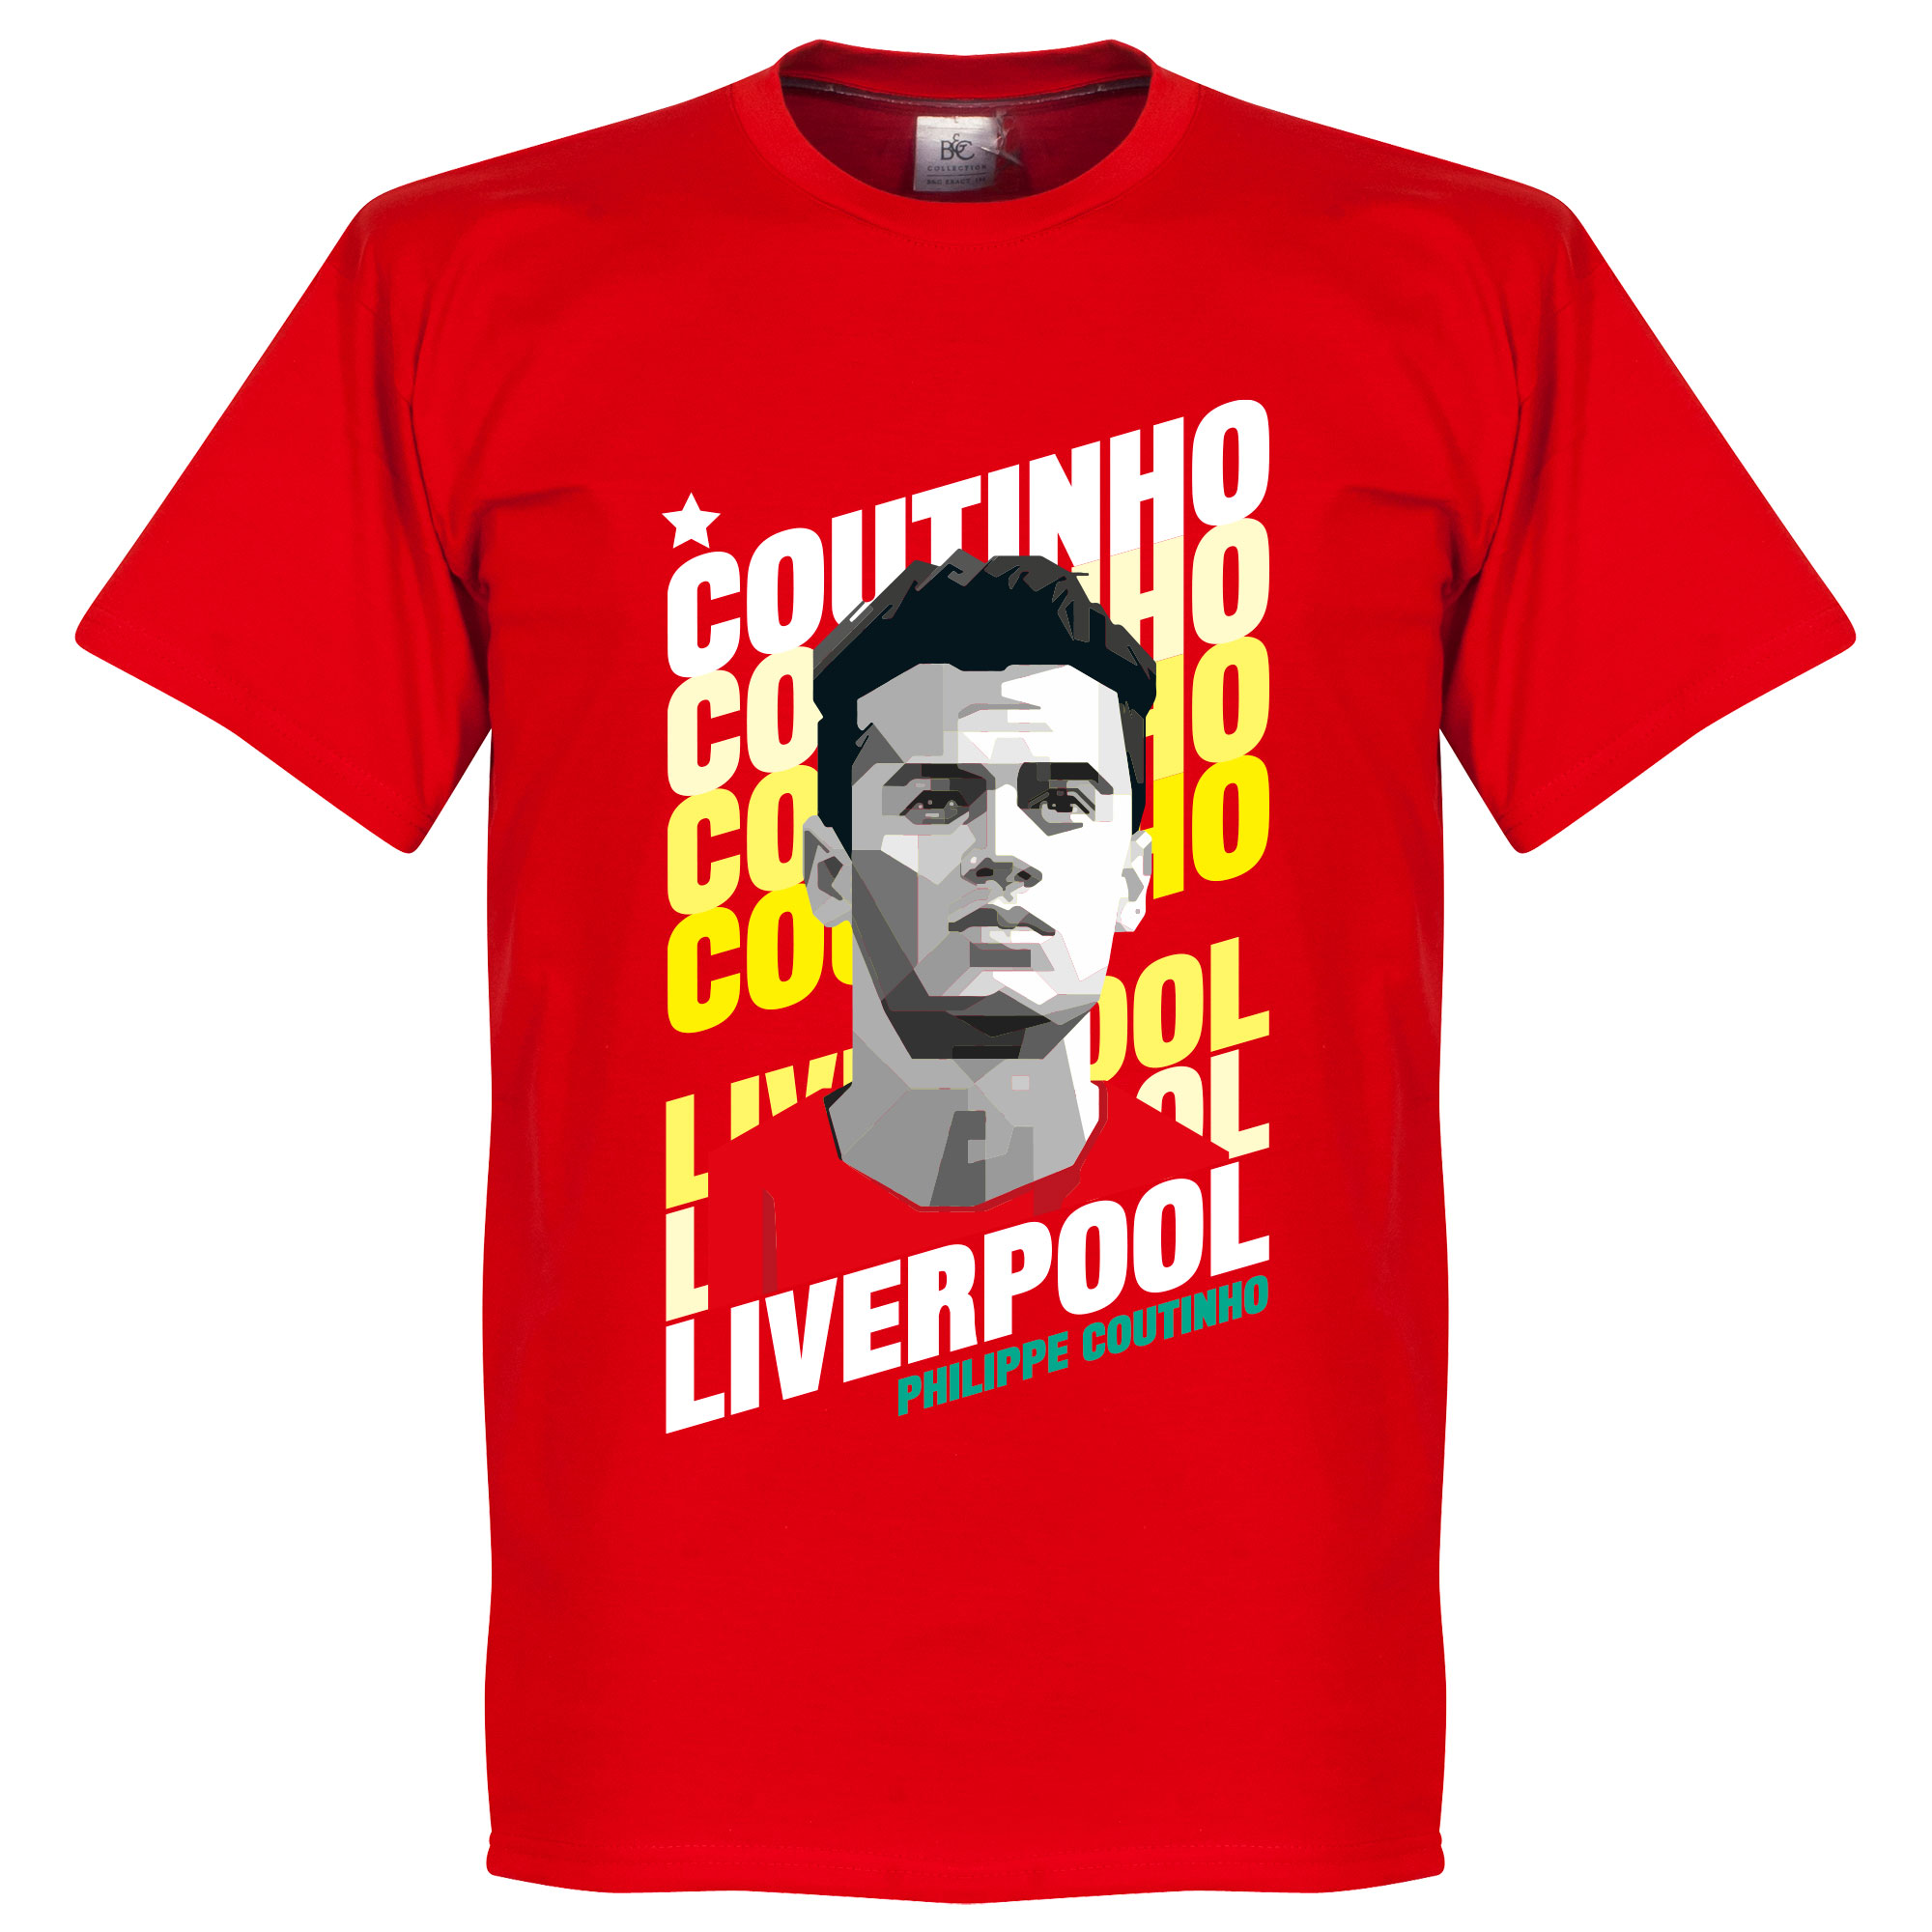 Coutinho Liverpool Portrait Tee - Red - M